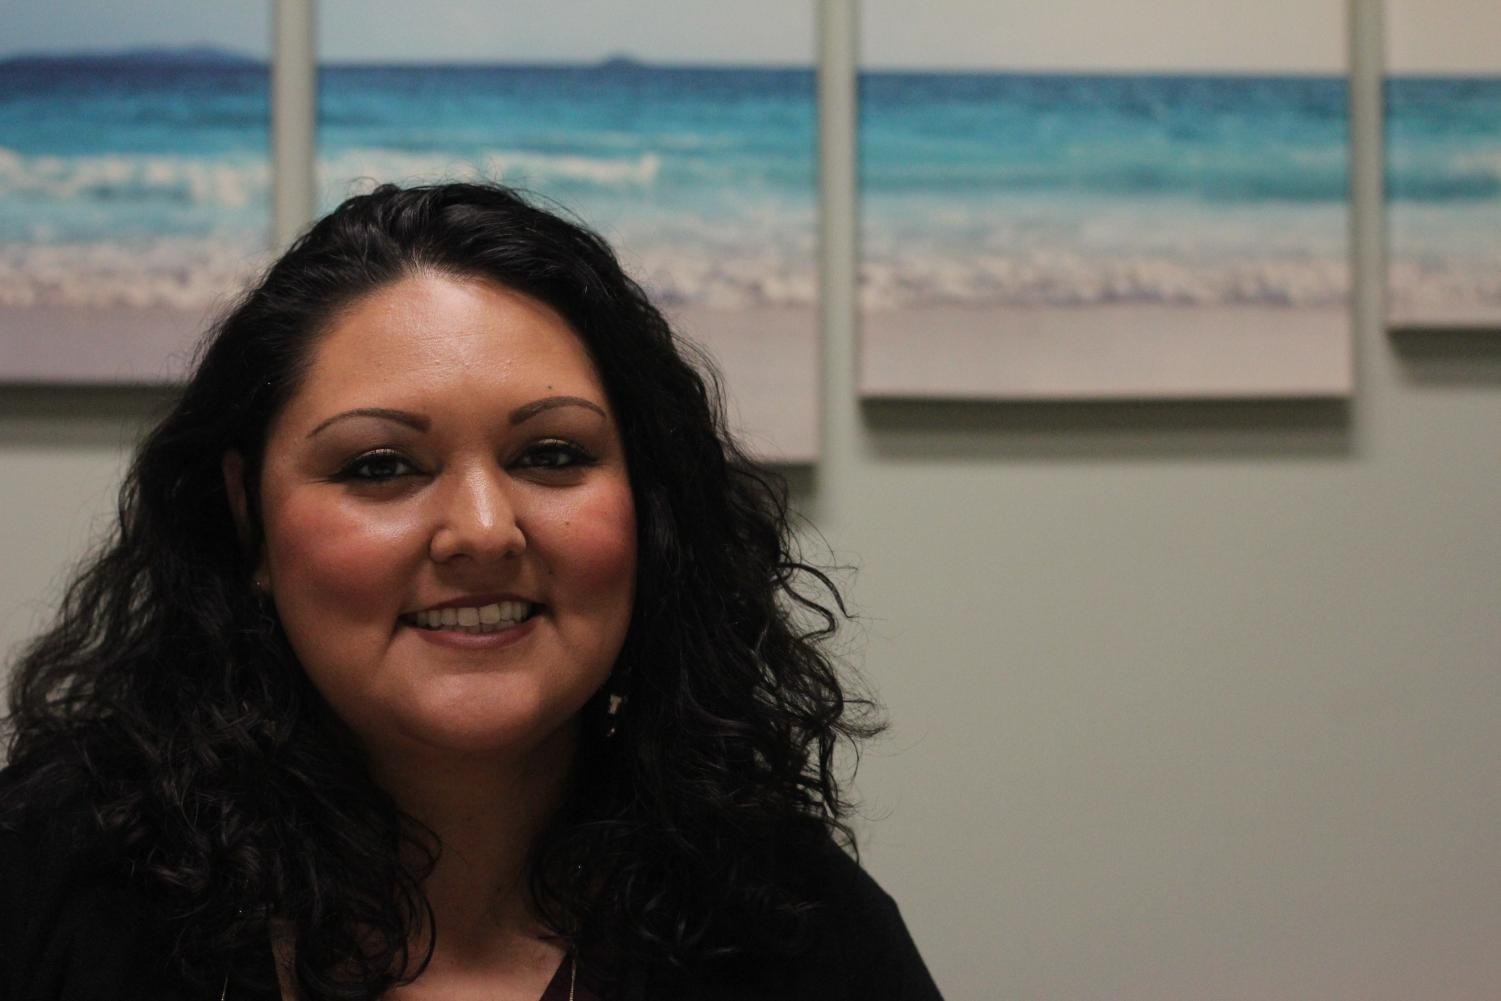 Danielle Muñoz, Sacramento State's Student Affairs case manager, has helped 118 students who are facing financial or emotional distress this semester.